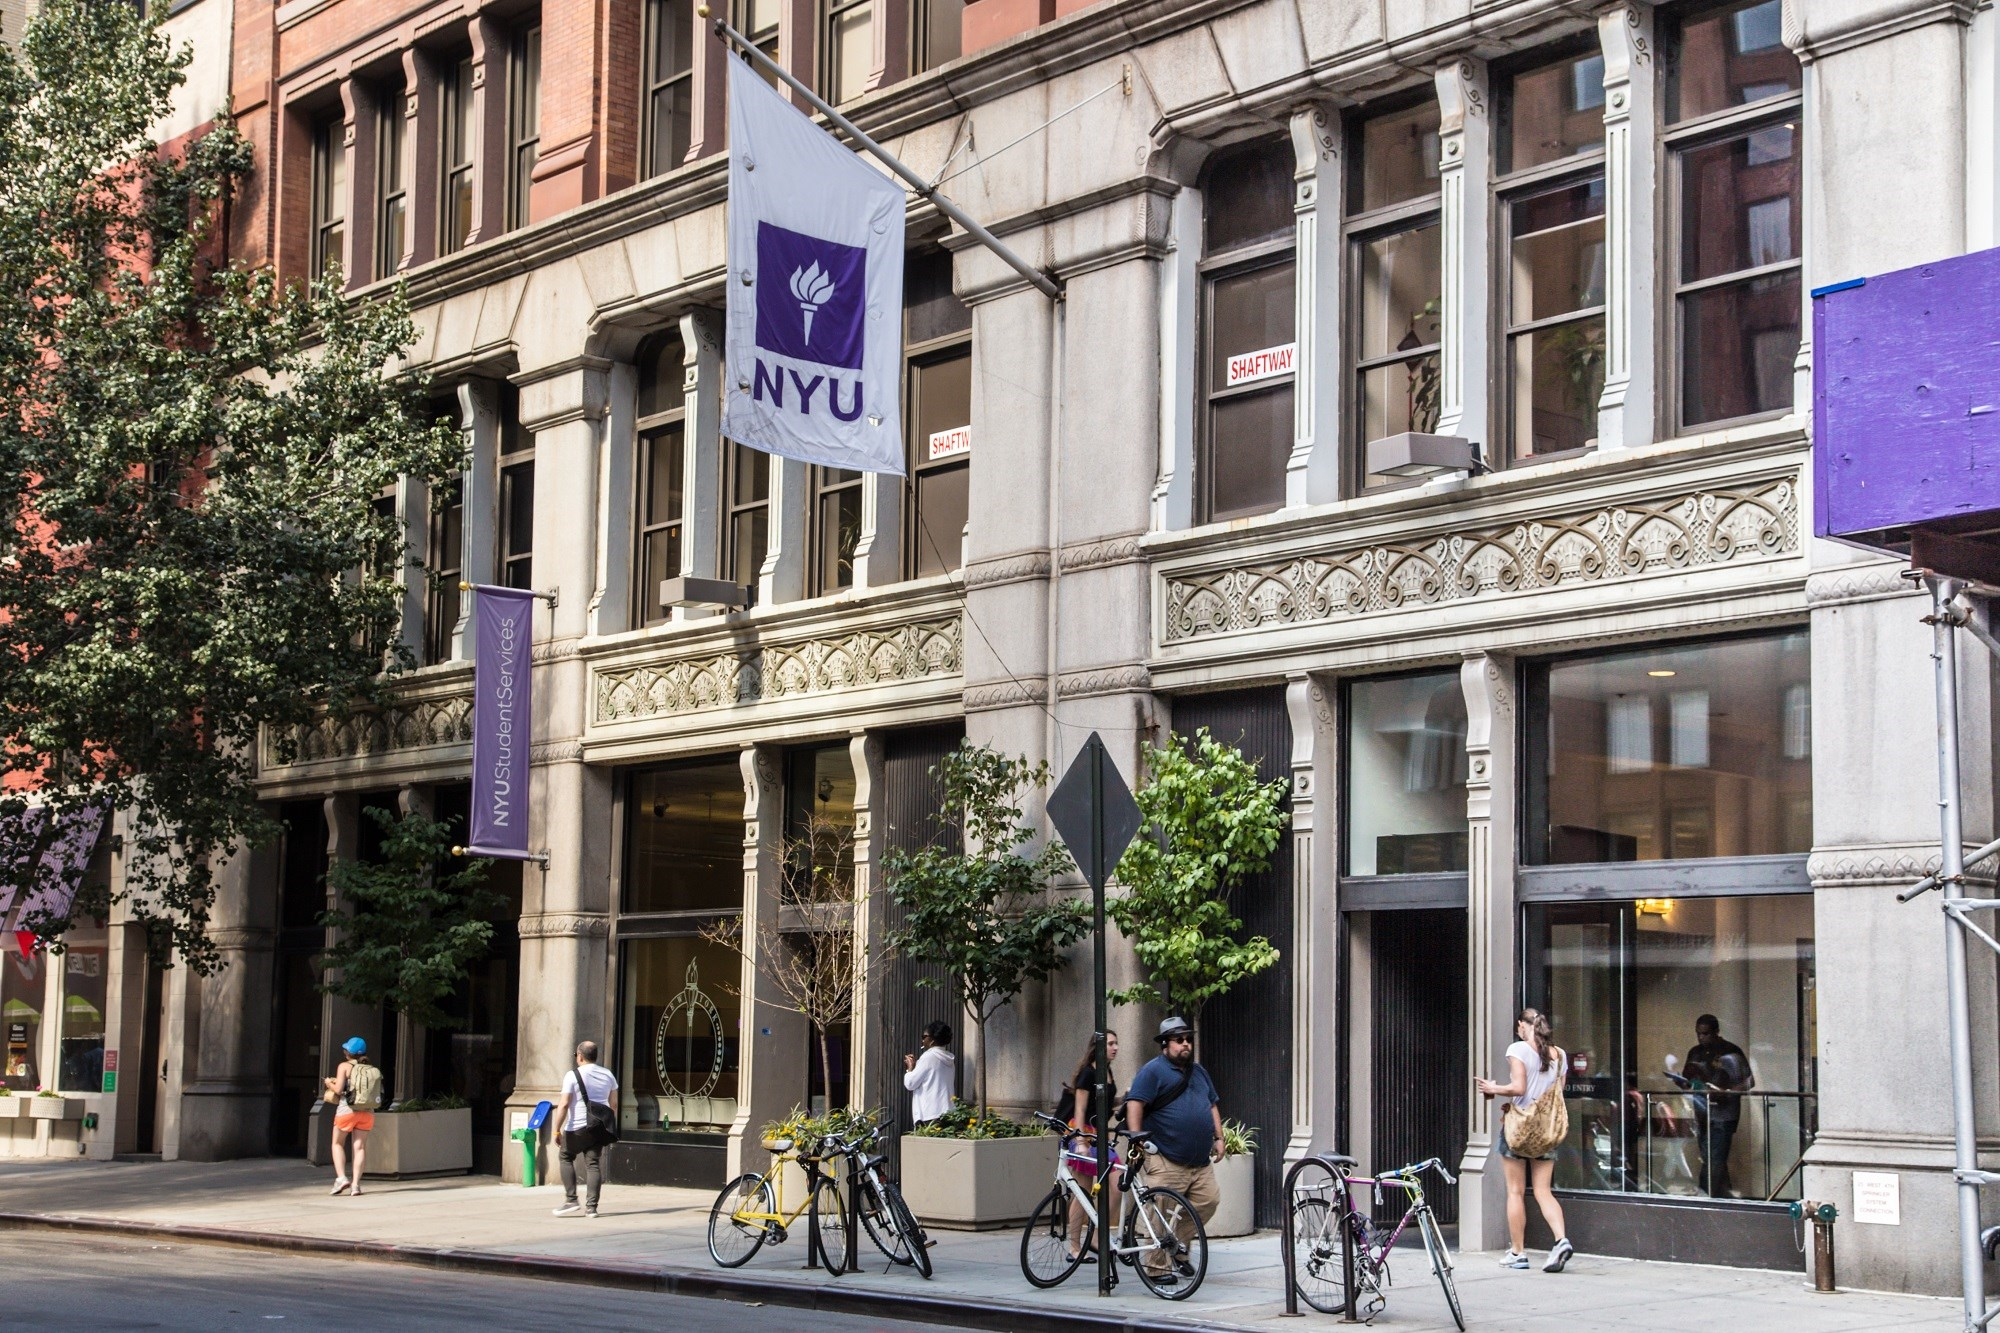 The NYU School of Medicine has announced that it is offering full-tuition scholarships to all current and future students in its MD degree program, regardless of need or merit.